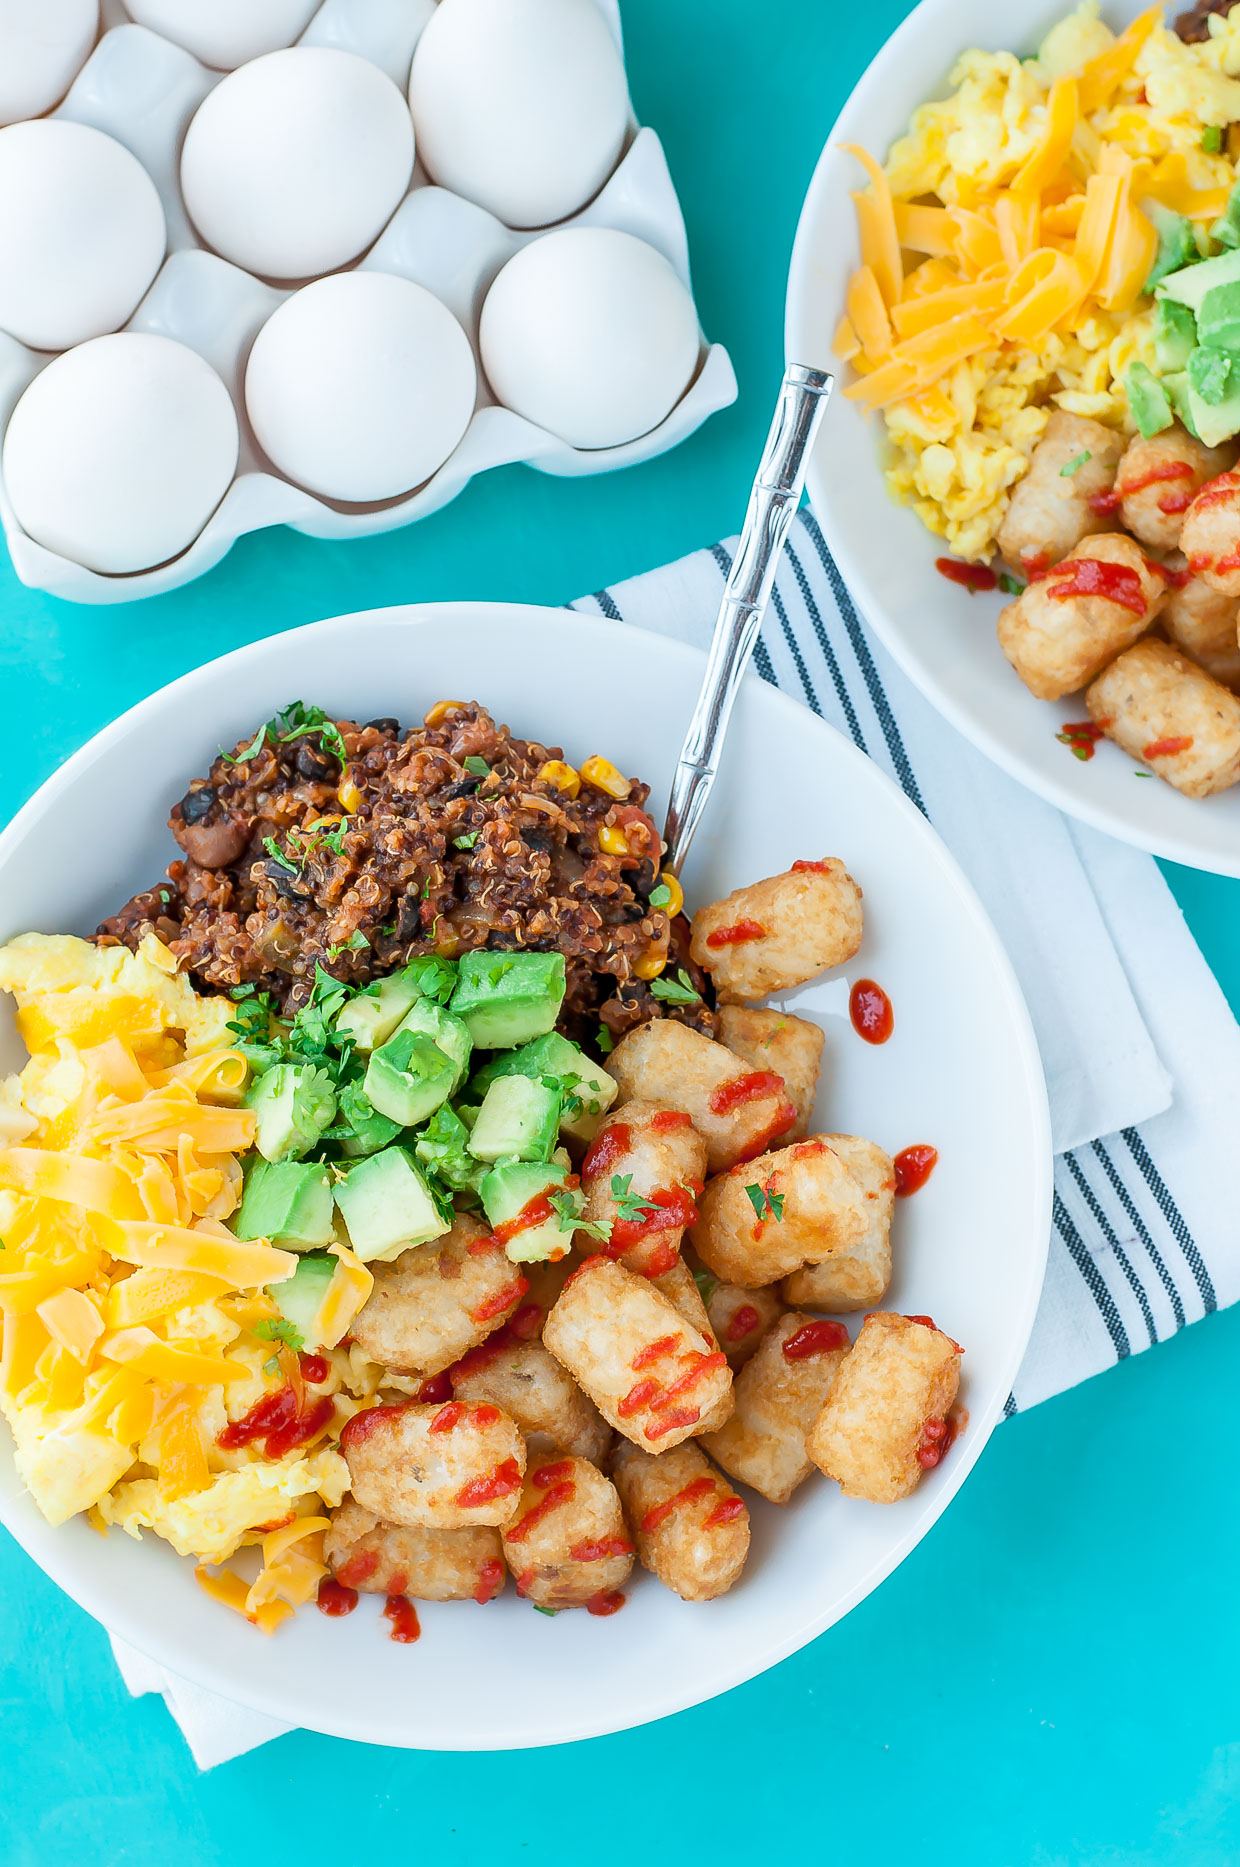 Cheesy scrambled eggs paired with a flavorful vegetarian quinoa chili, fresh avocado, and spicy sriracha tots... These vegetarian chili tot breakfast bowls are ready to rock your face!